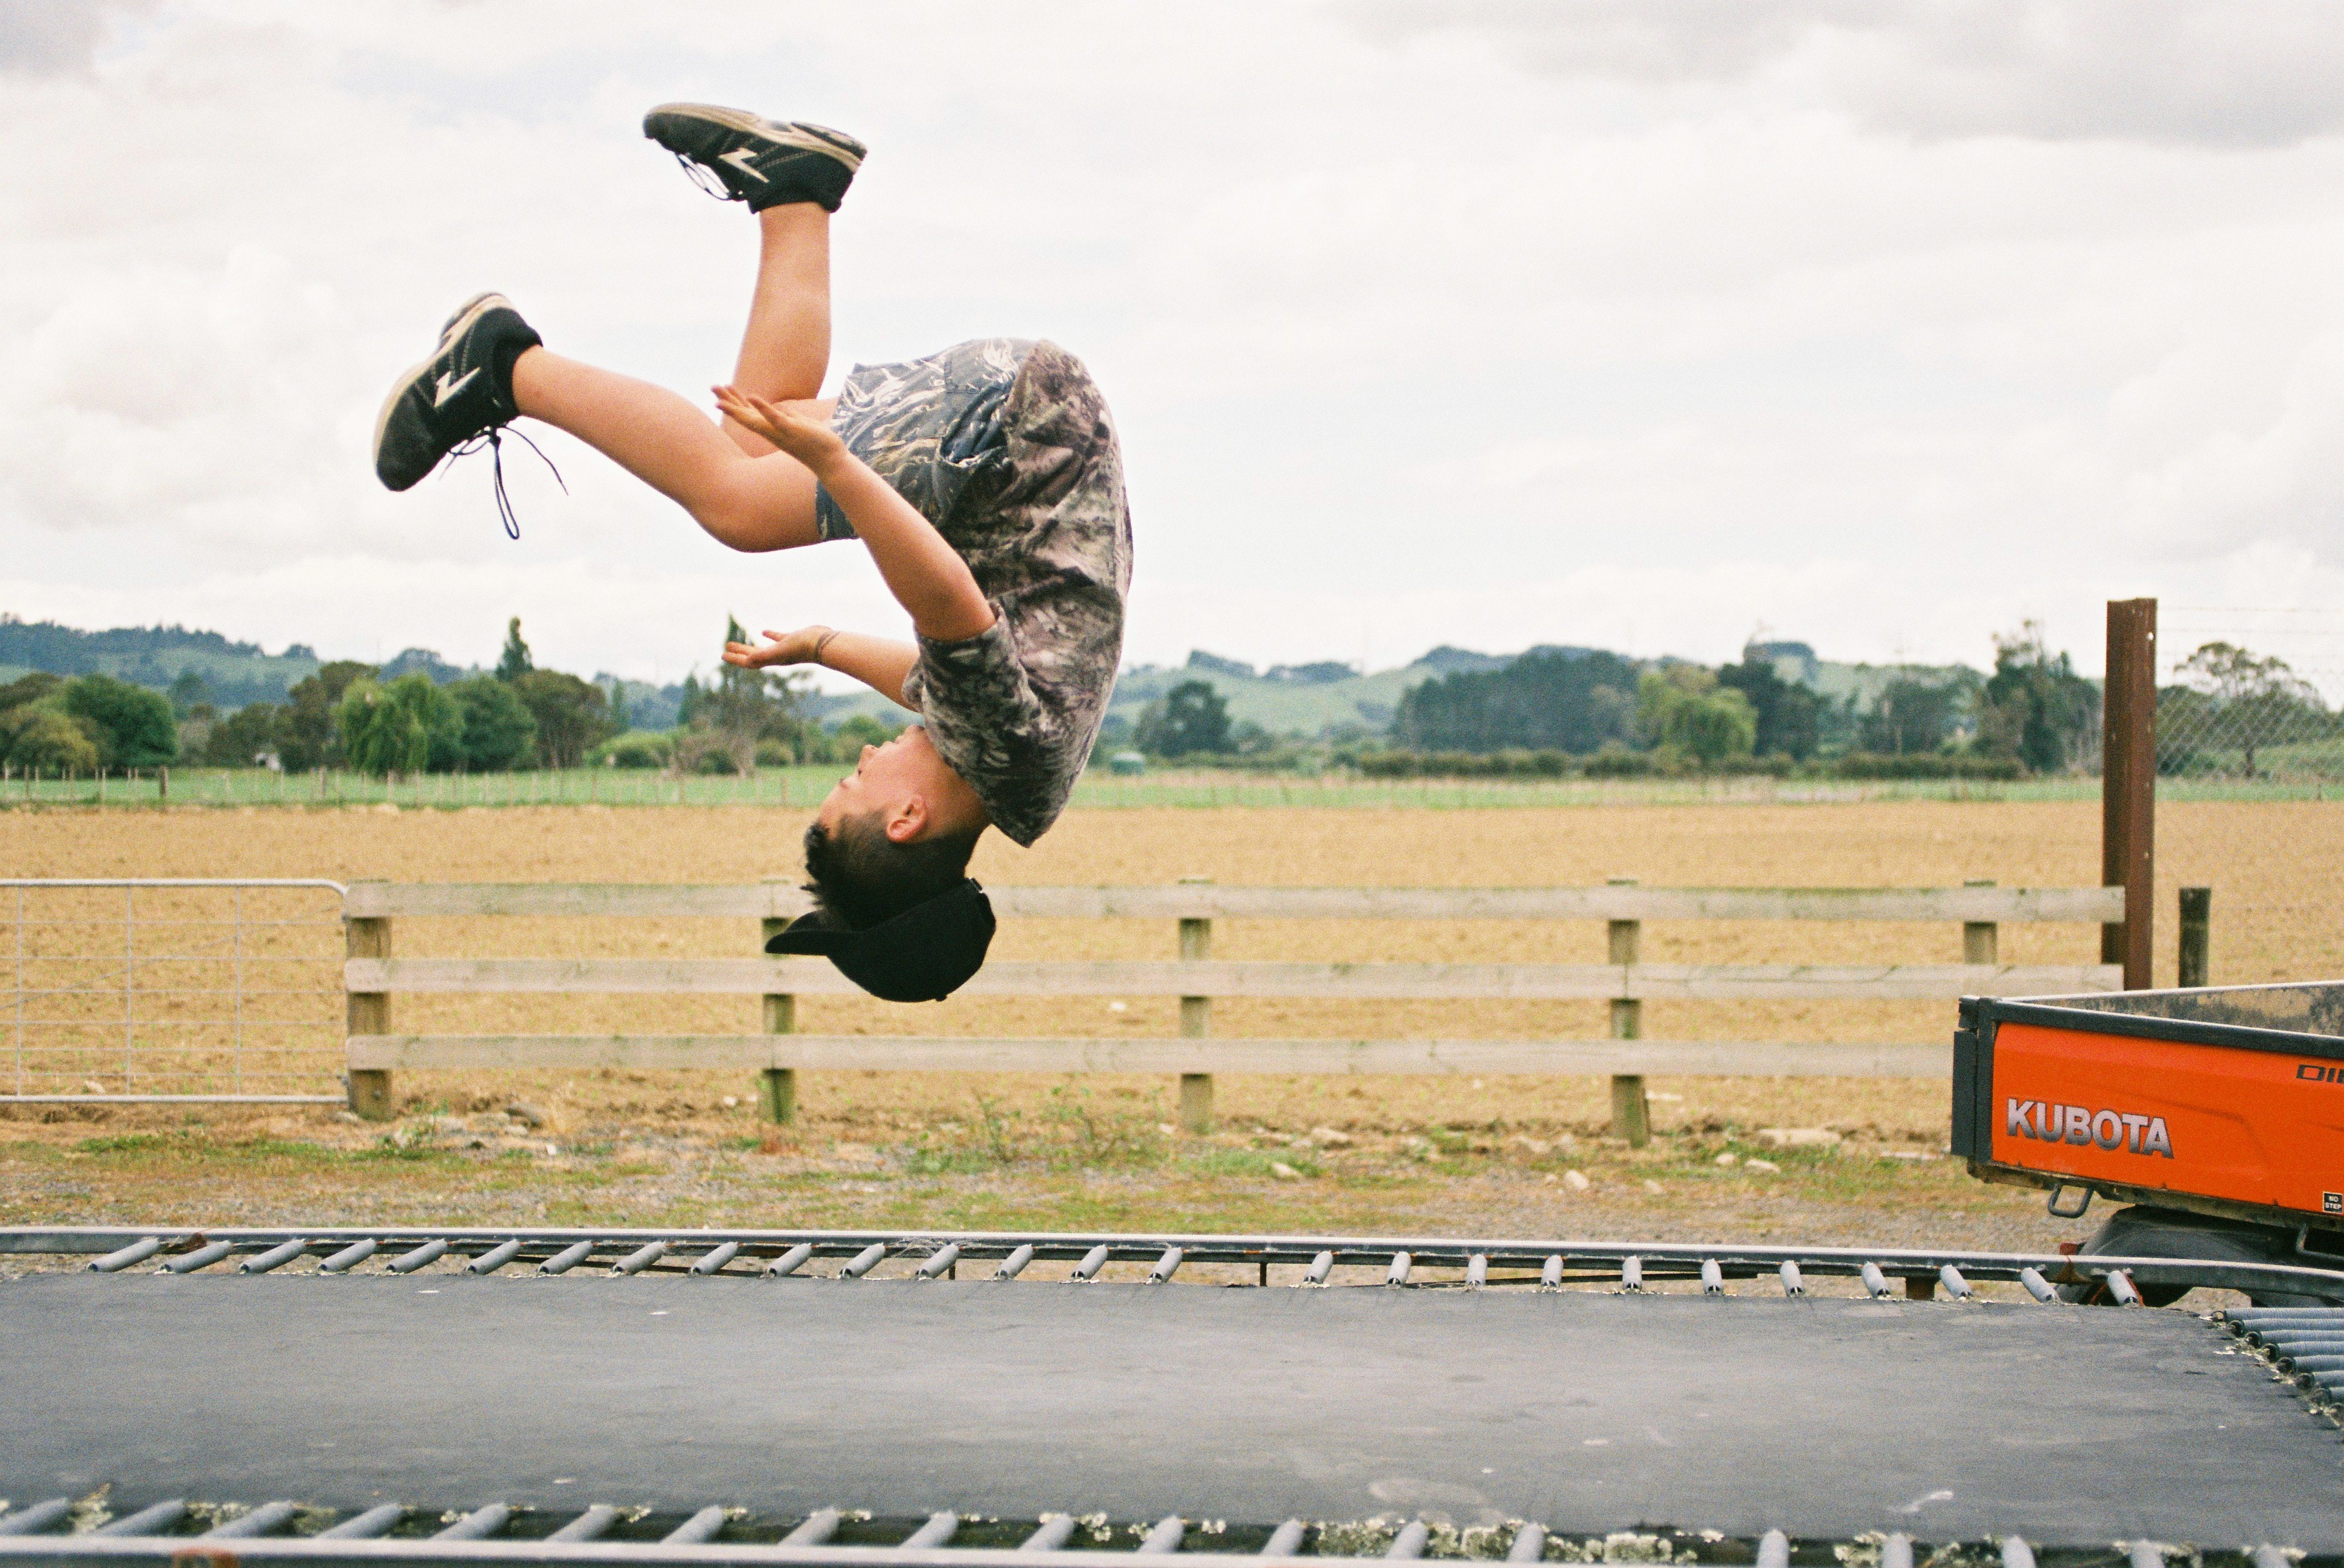 trampoline-by-charles-cheng